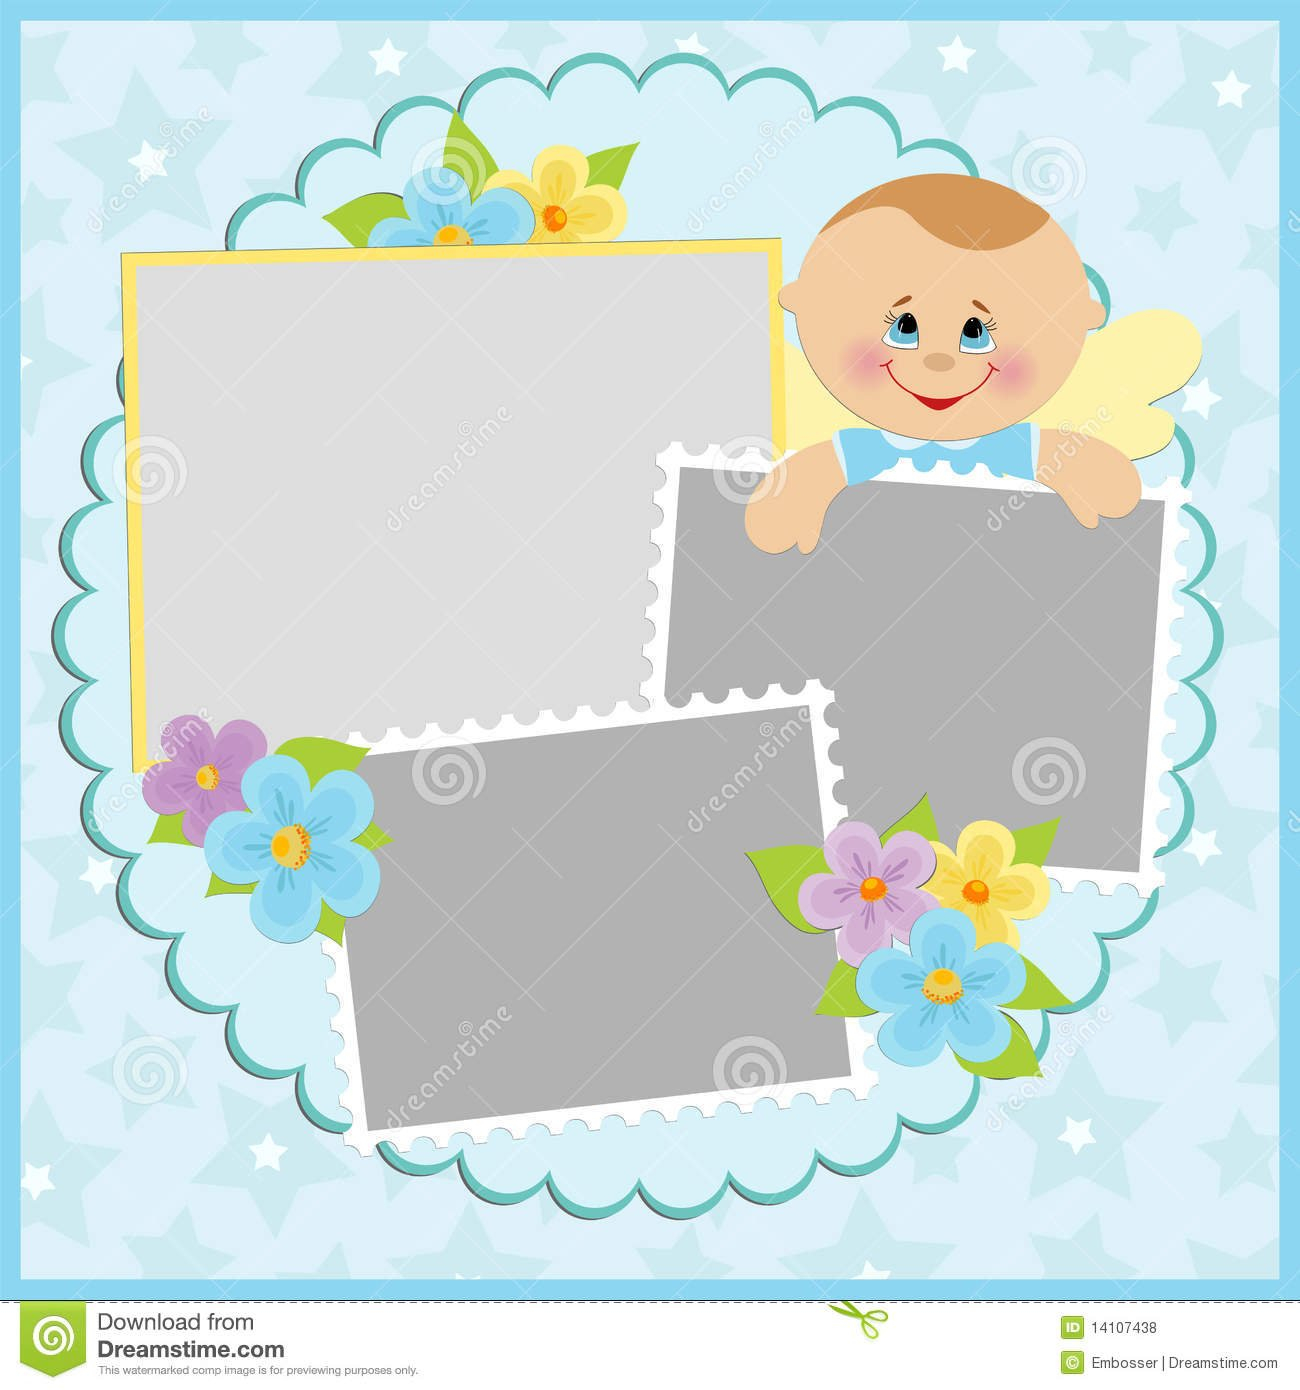 Template For Baby'S Photo Album Royalty Free Stock Photos Tempalate For Baby Sweepstake